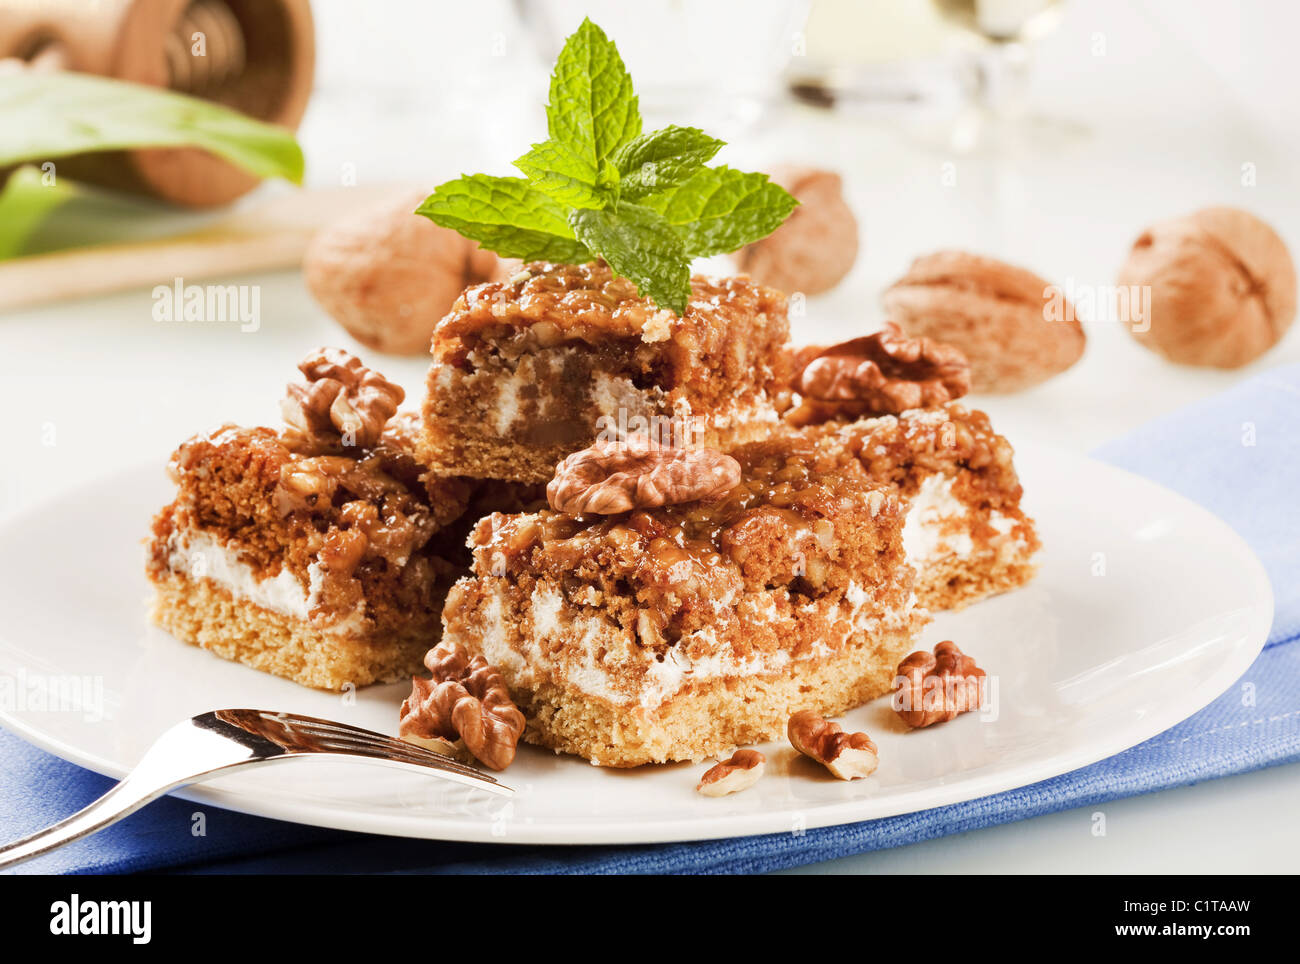 Slices of delicious walnut cake - detail - Stock Image